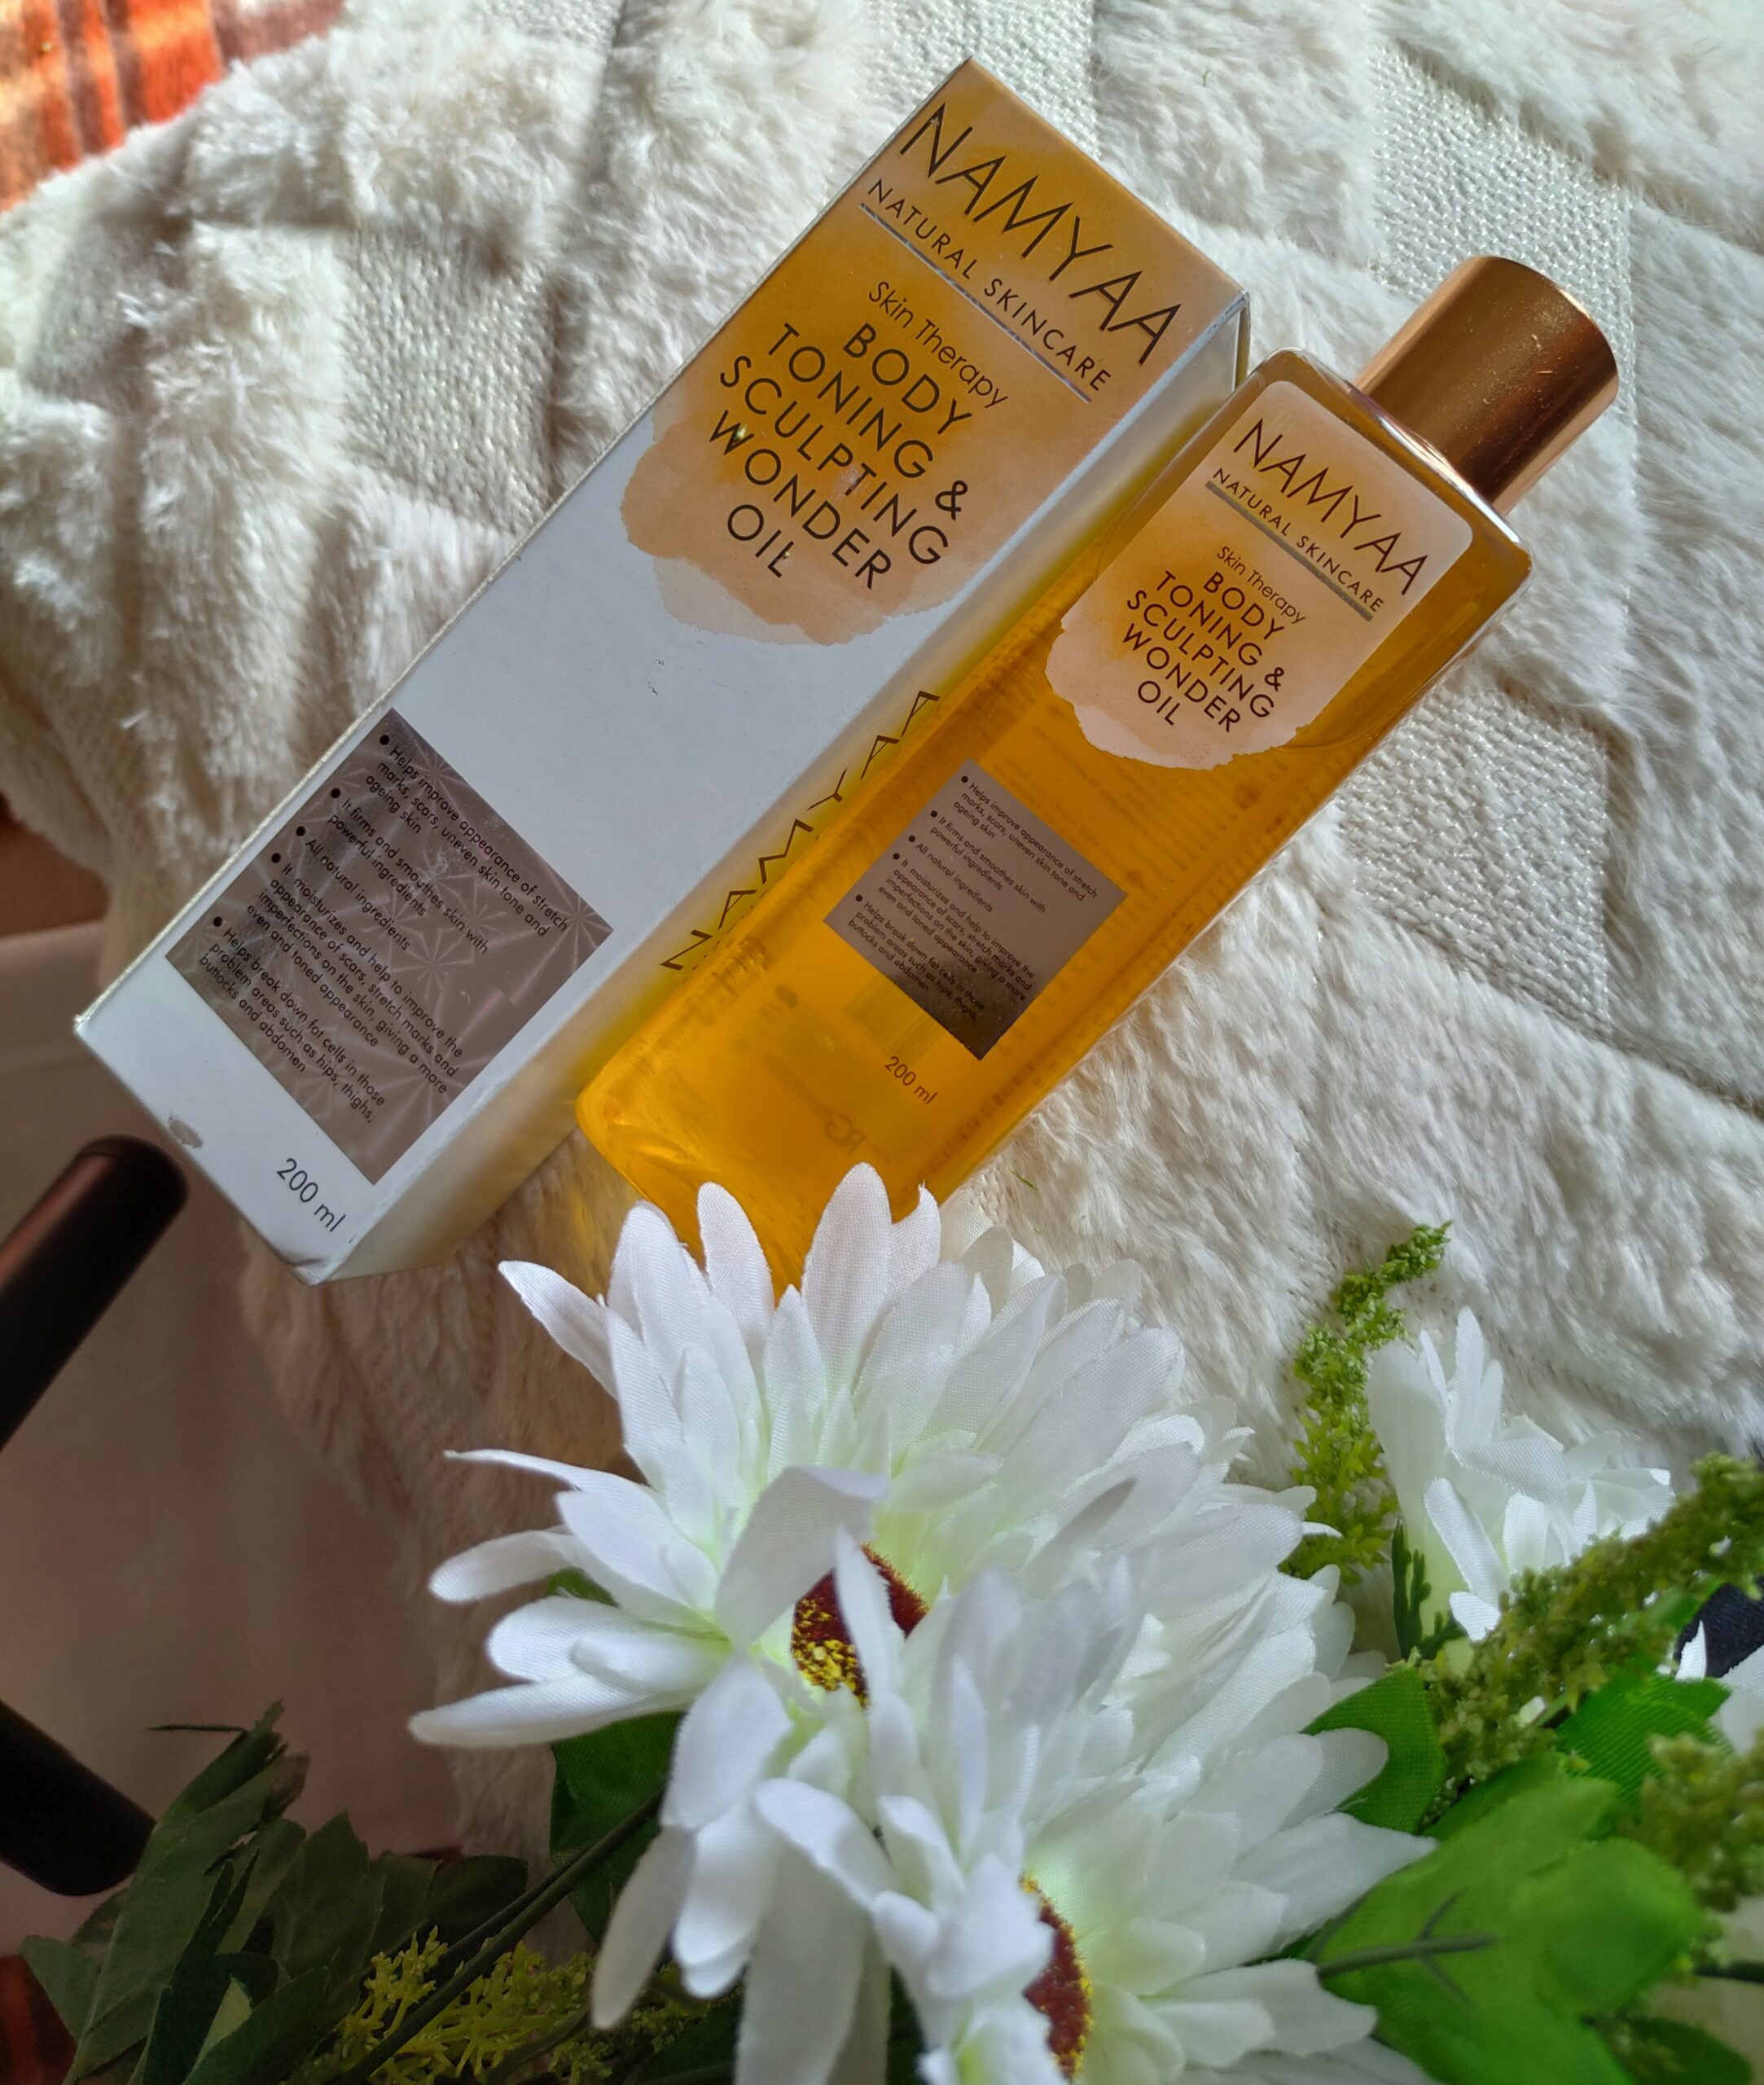 Namyaa Natural Skin Therapy Body Toning & Sculpting Wonder Oil Review